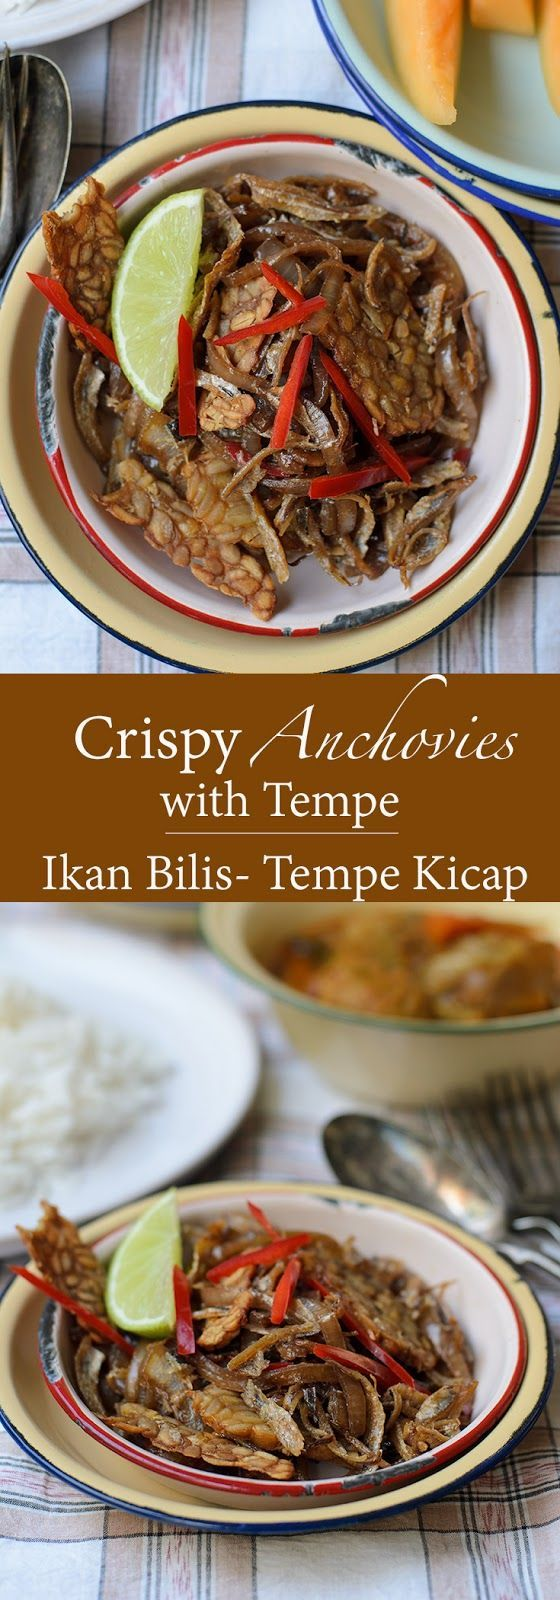 Crispy Anchovies with Tempe, best eaten with steaming hot jasmine rice.